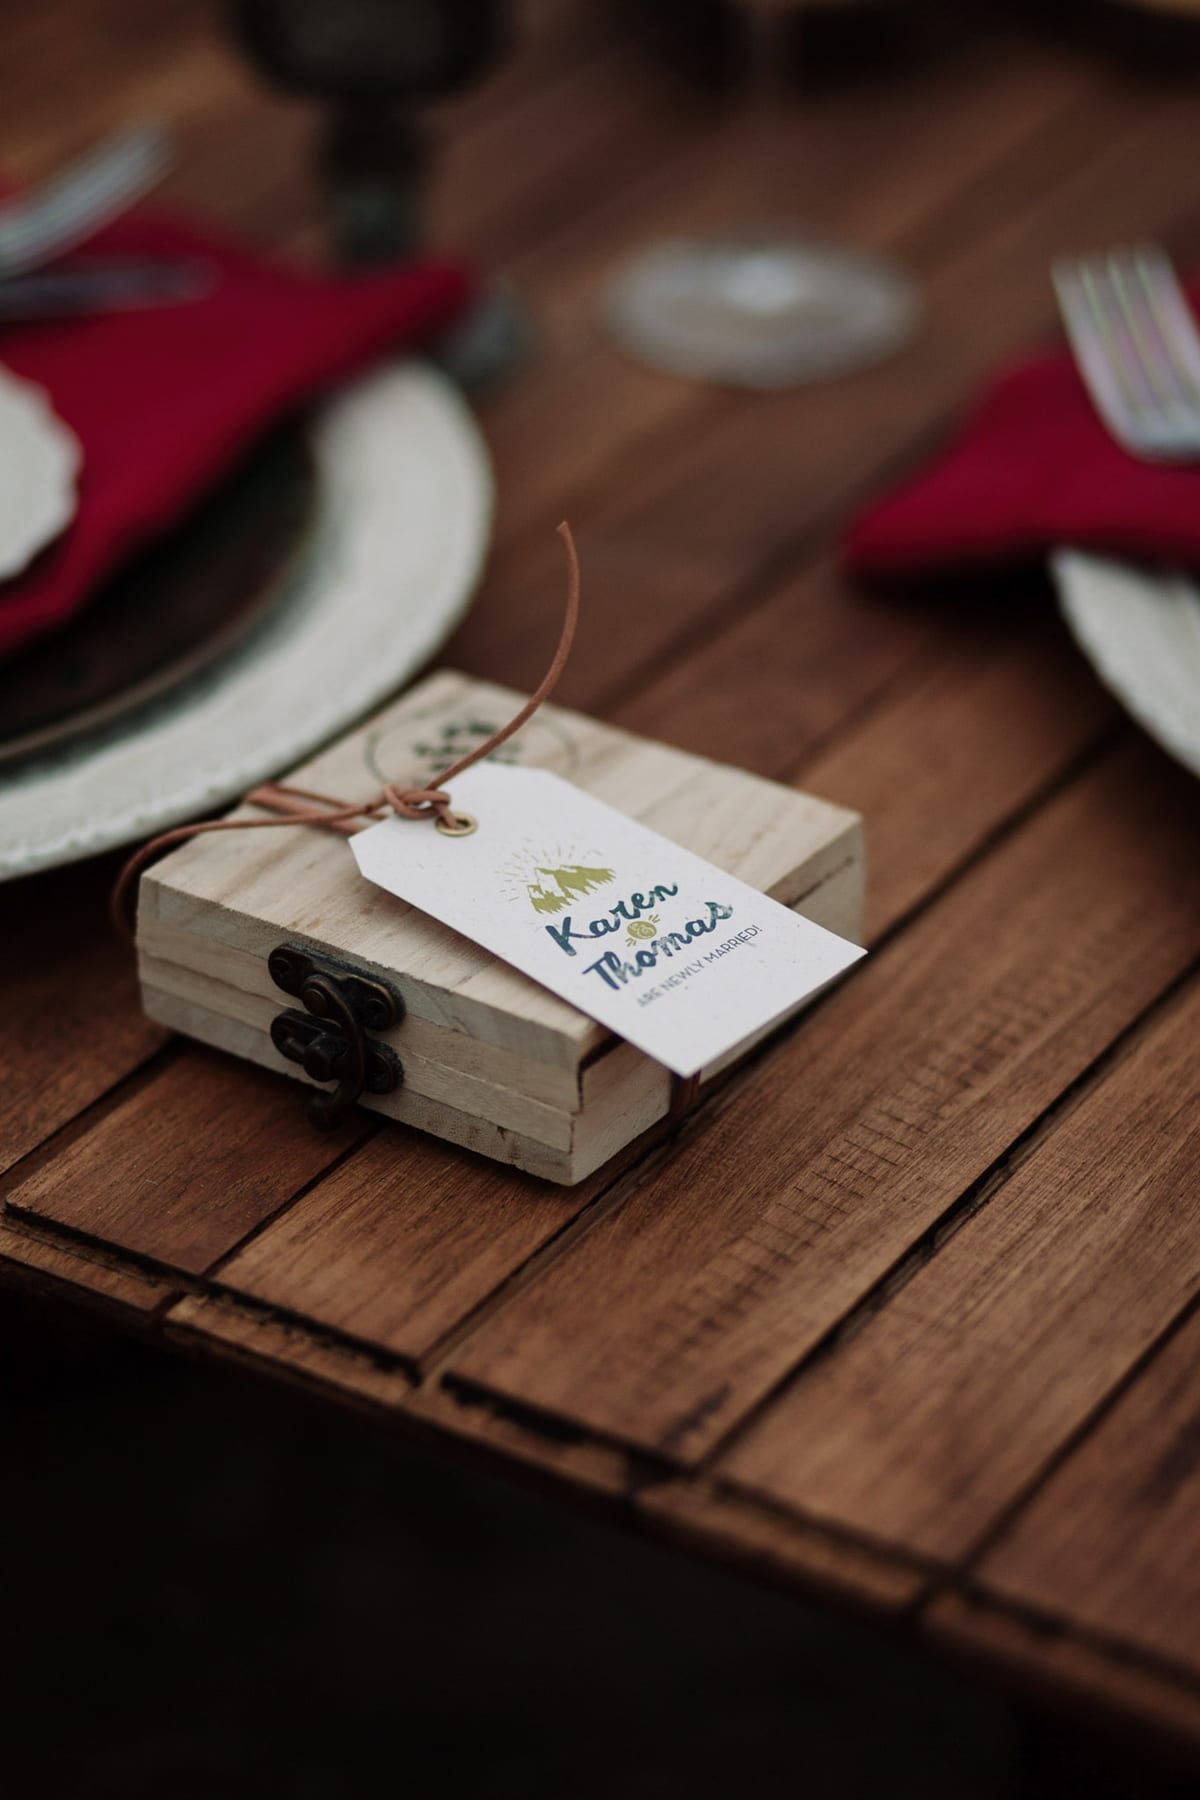 Ideas for original winter wedding guest favors